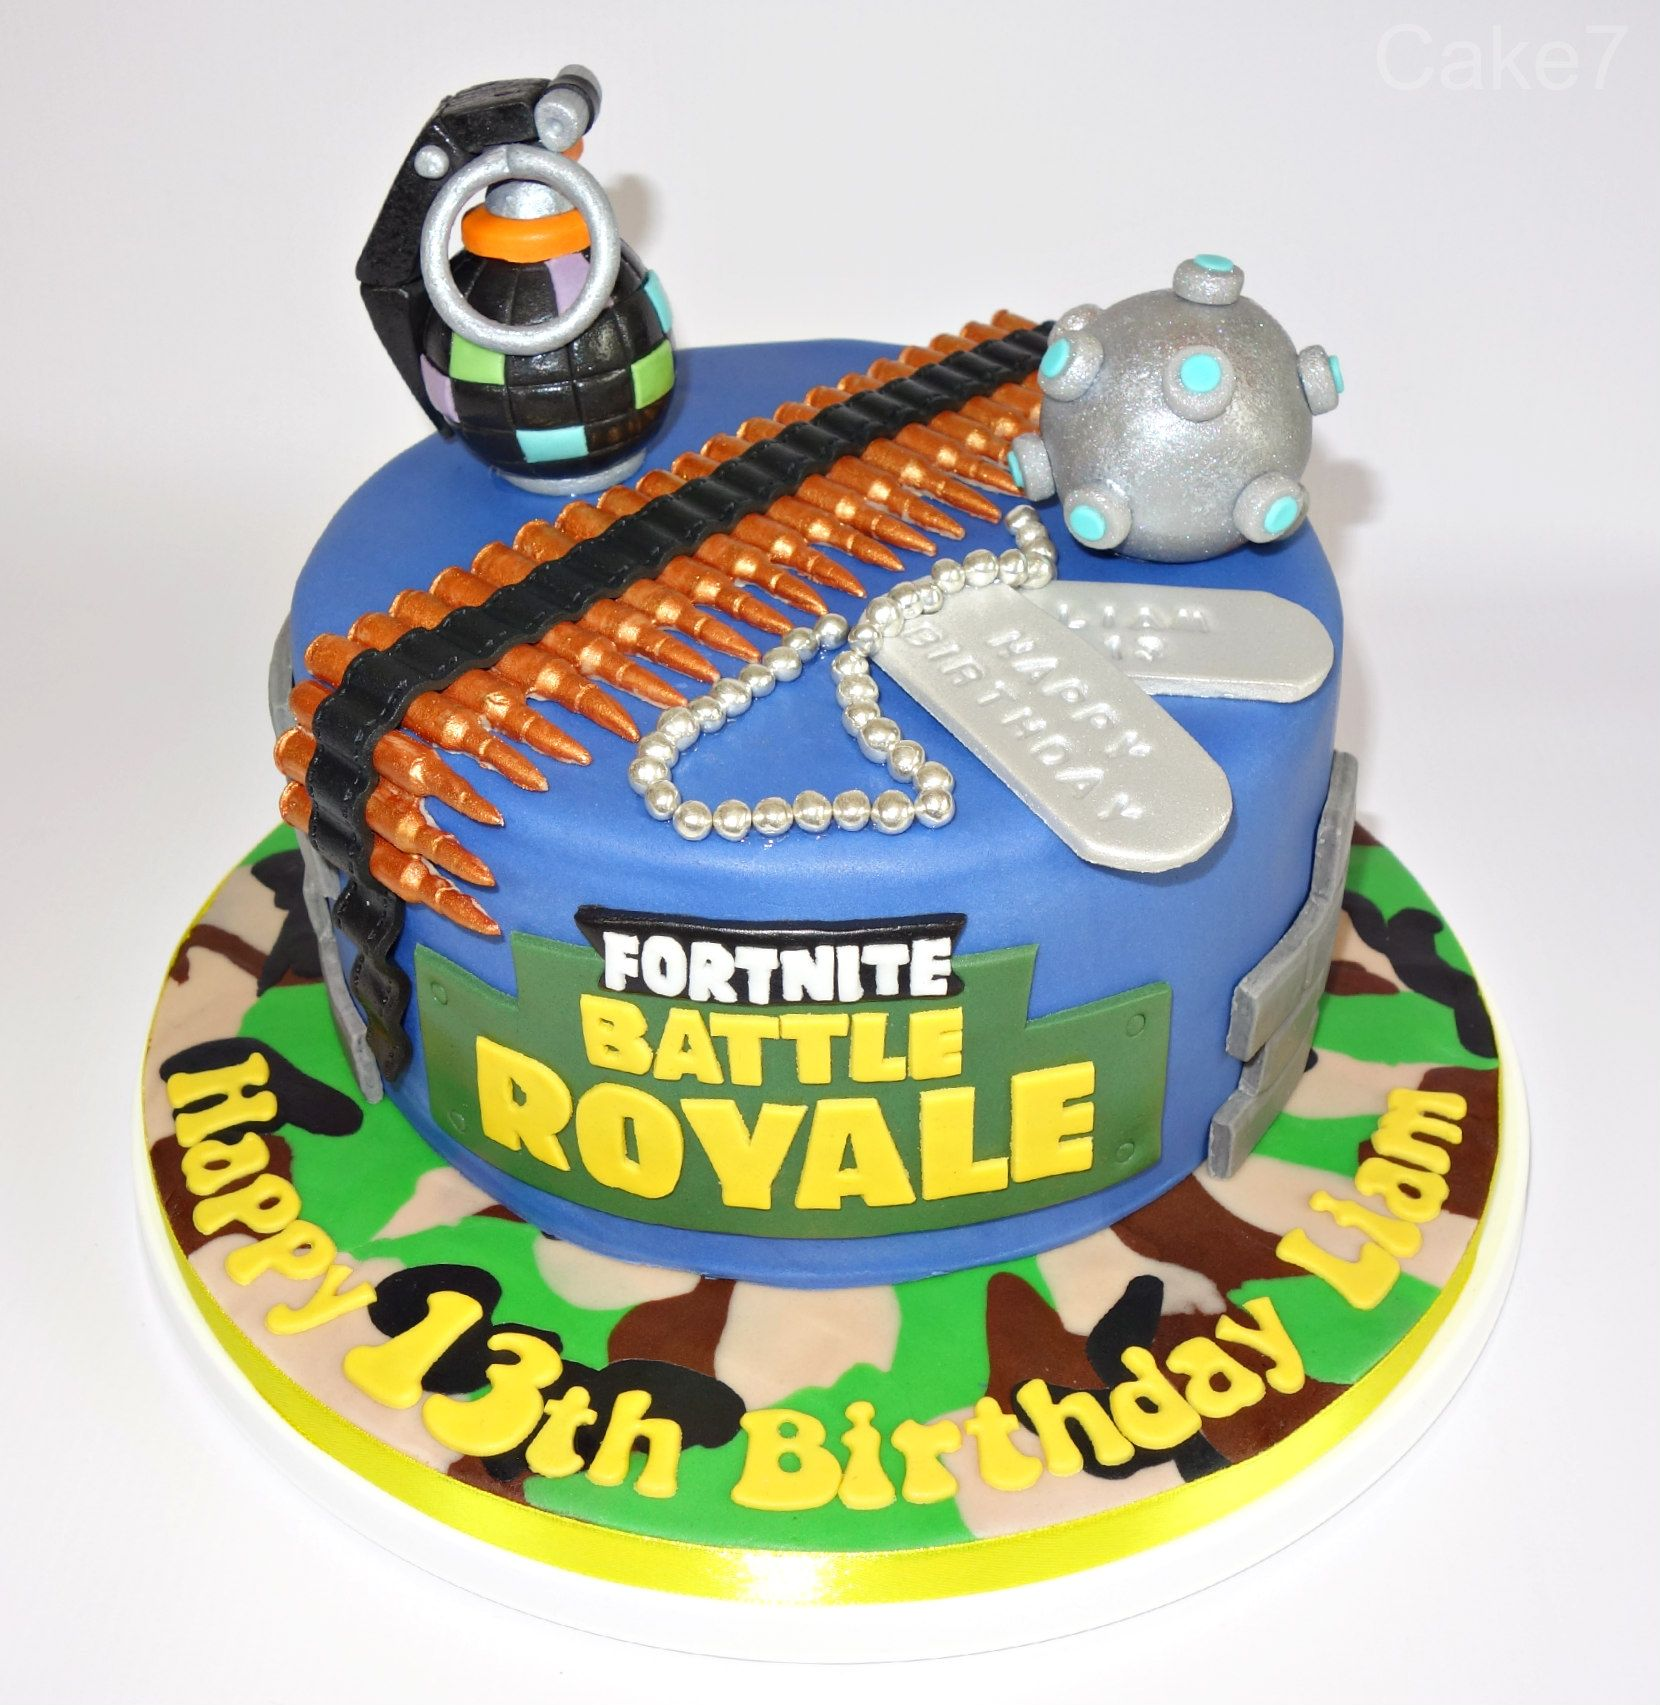 Fortnite Battle Royale cake. www.cakeseven.wix... Facebook